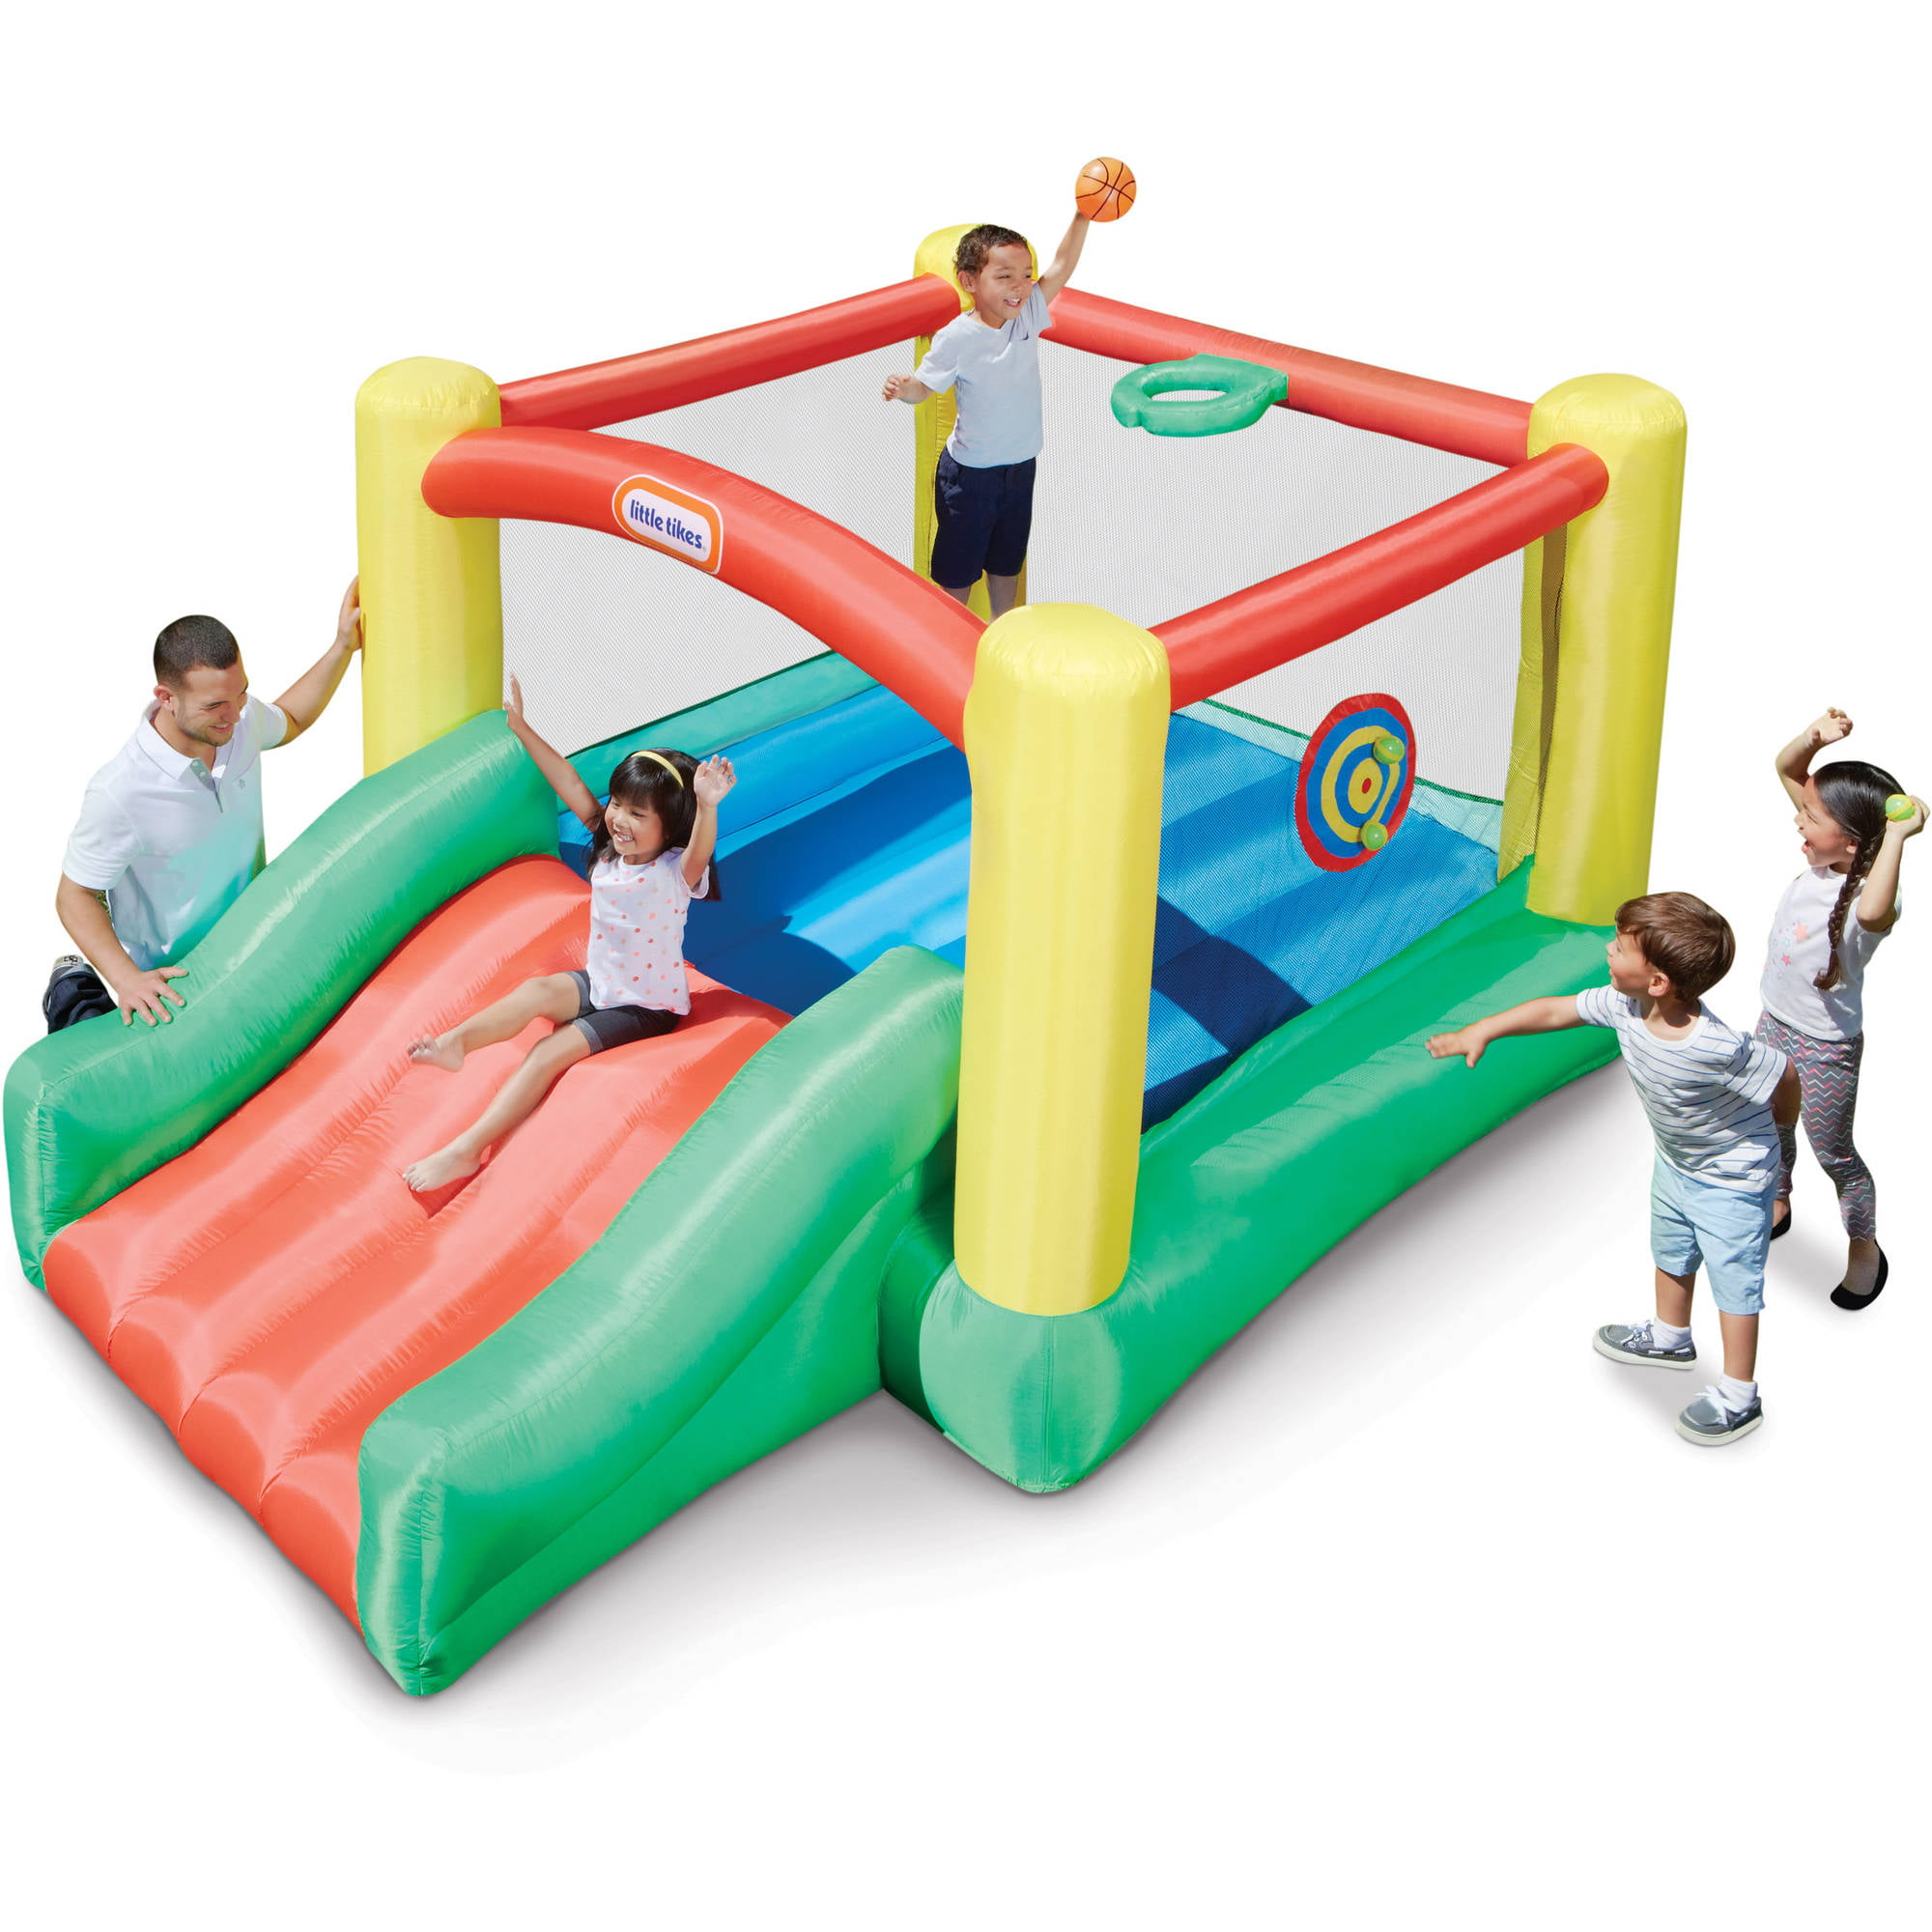 Little Tikes Dunk 'n Toss Inflatable Bouncer